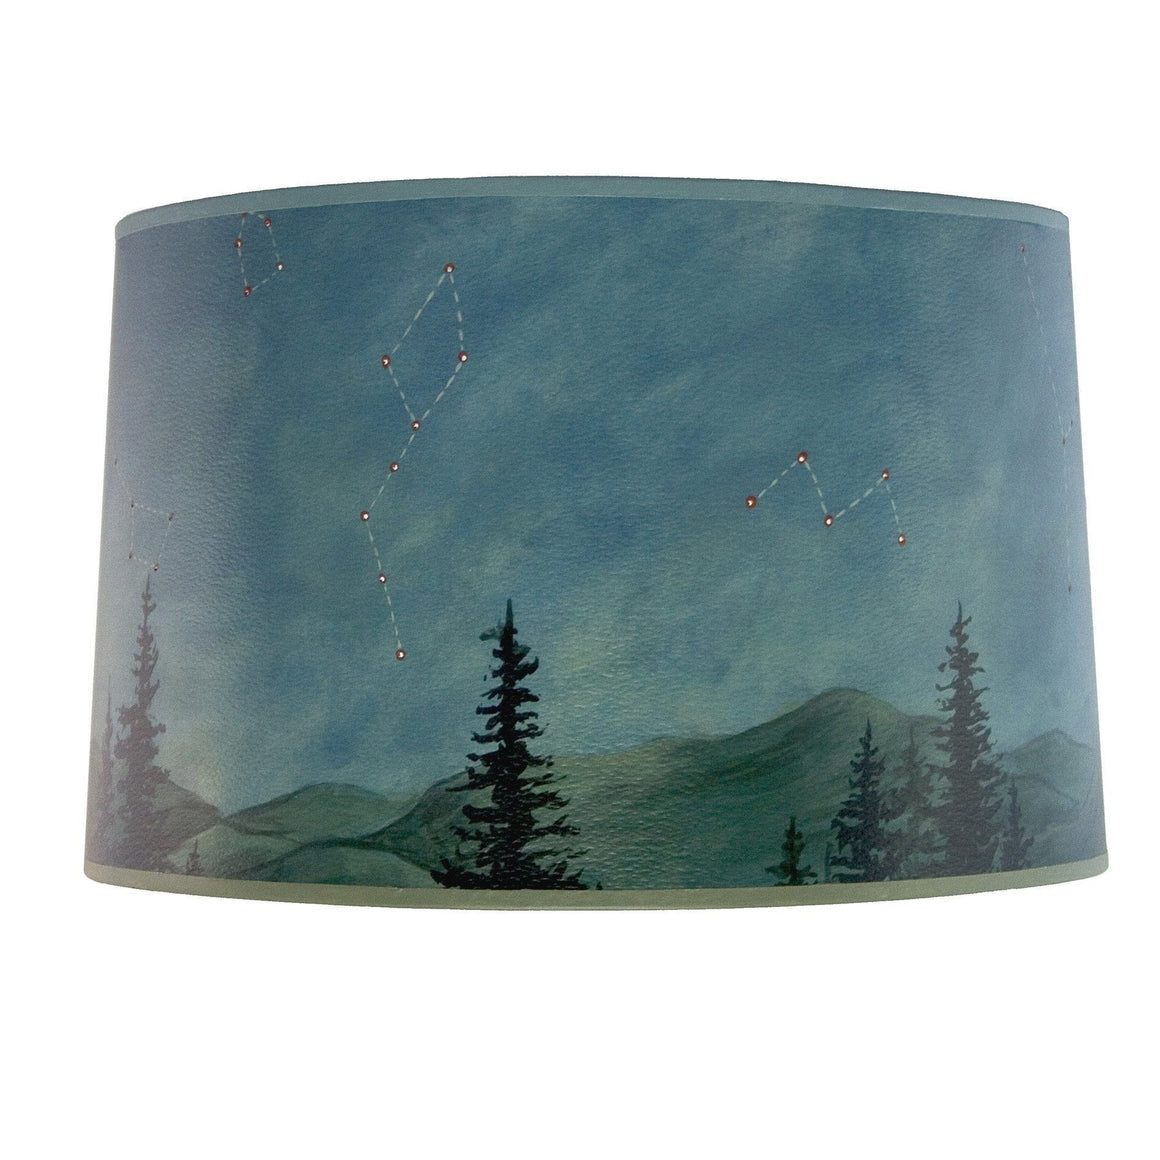 Large Drum Lamp Shade in Midnight Sky